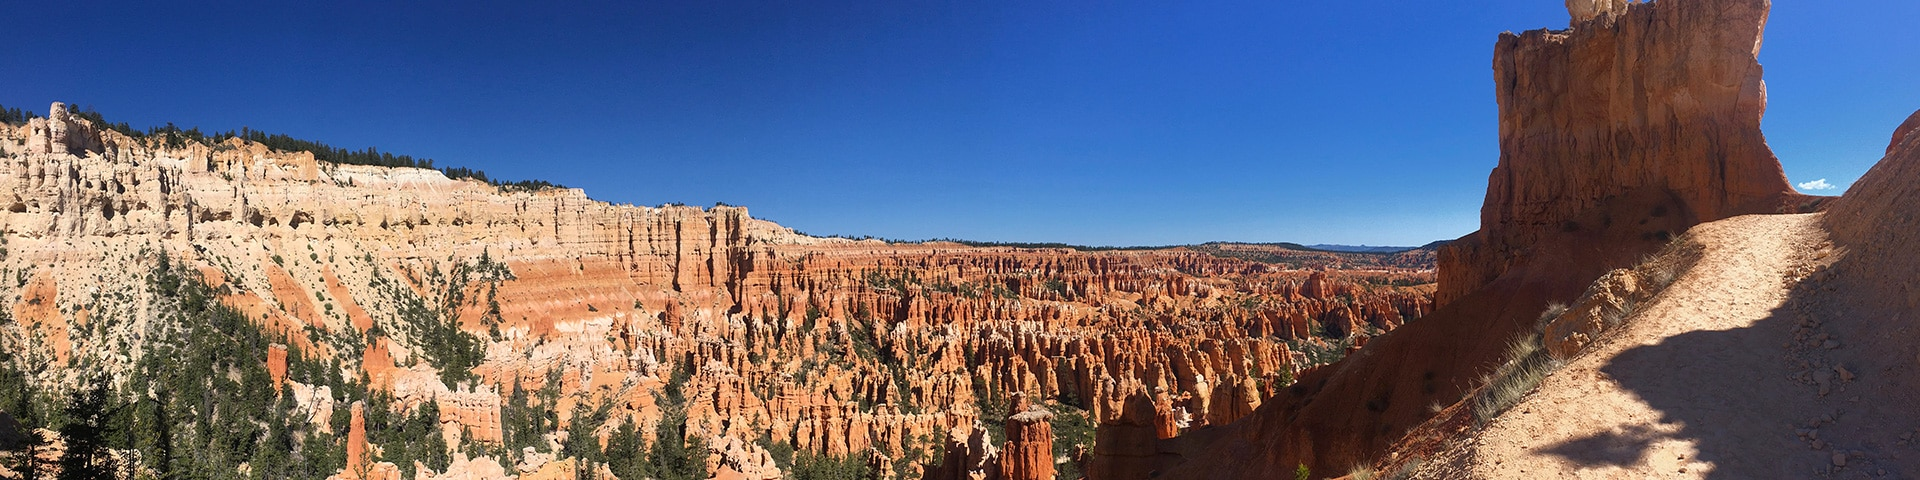 Hiking in Bryce Canyon, Utah